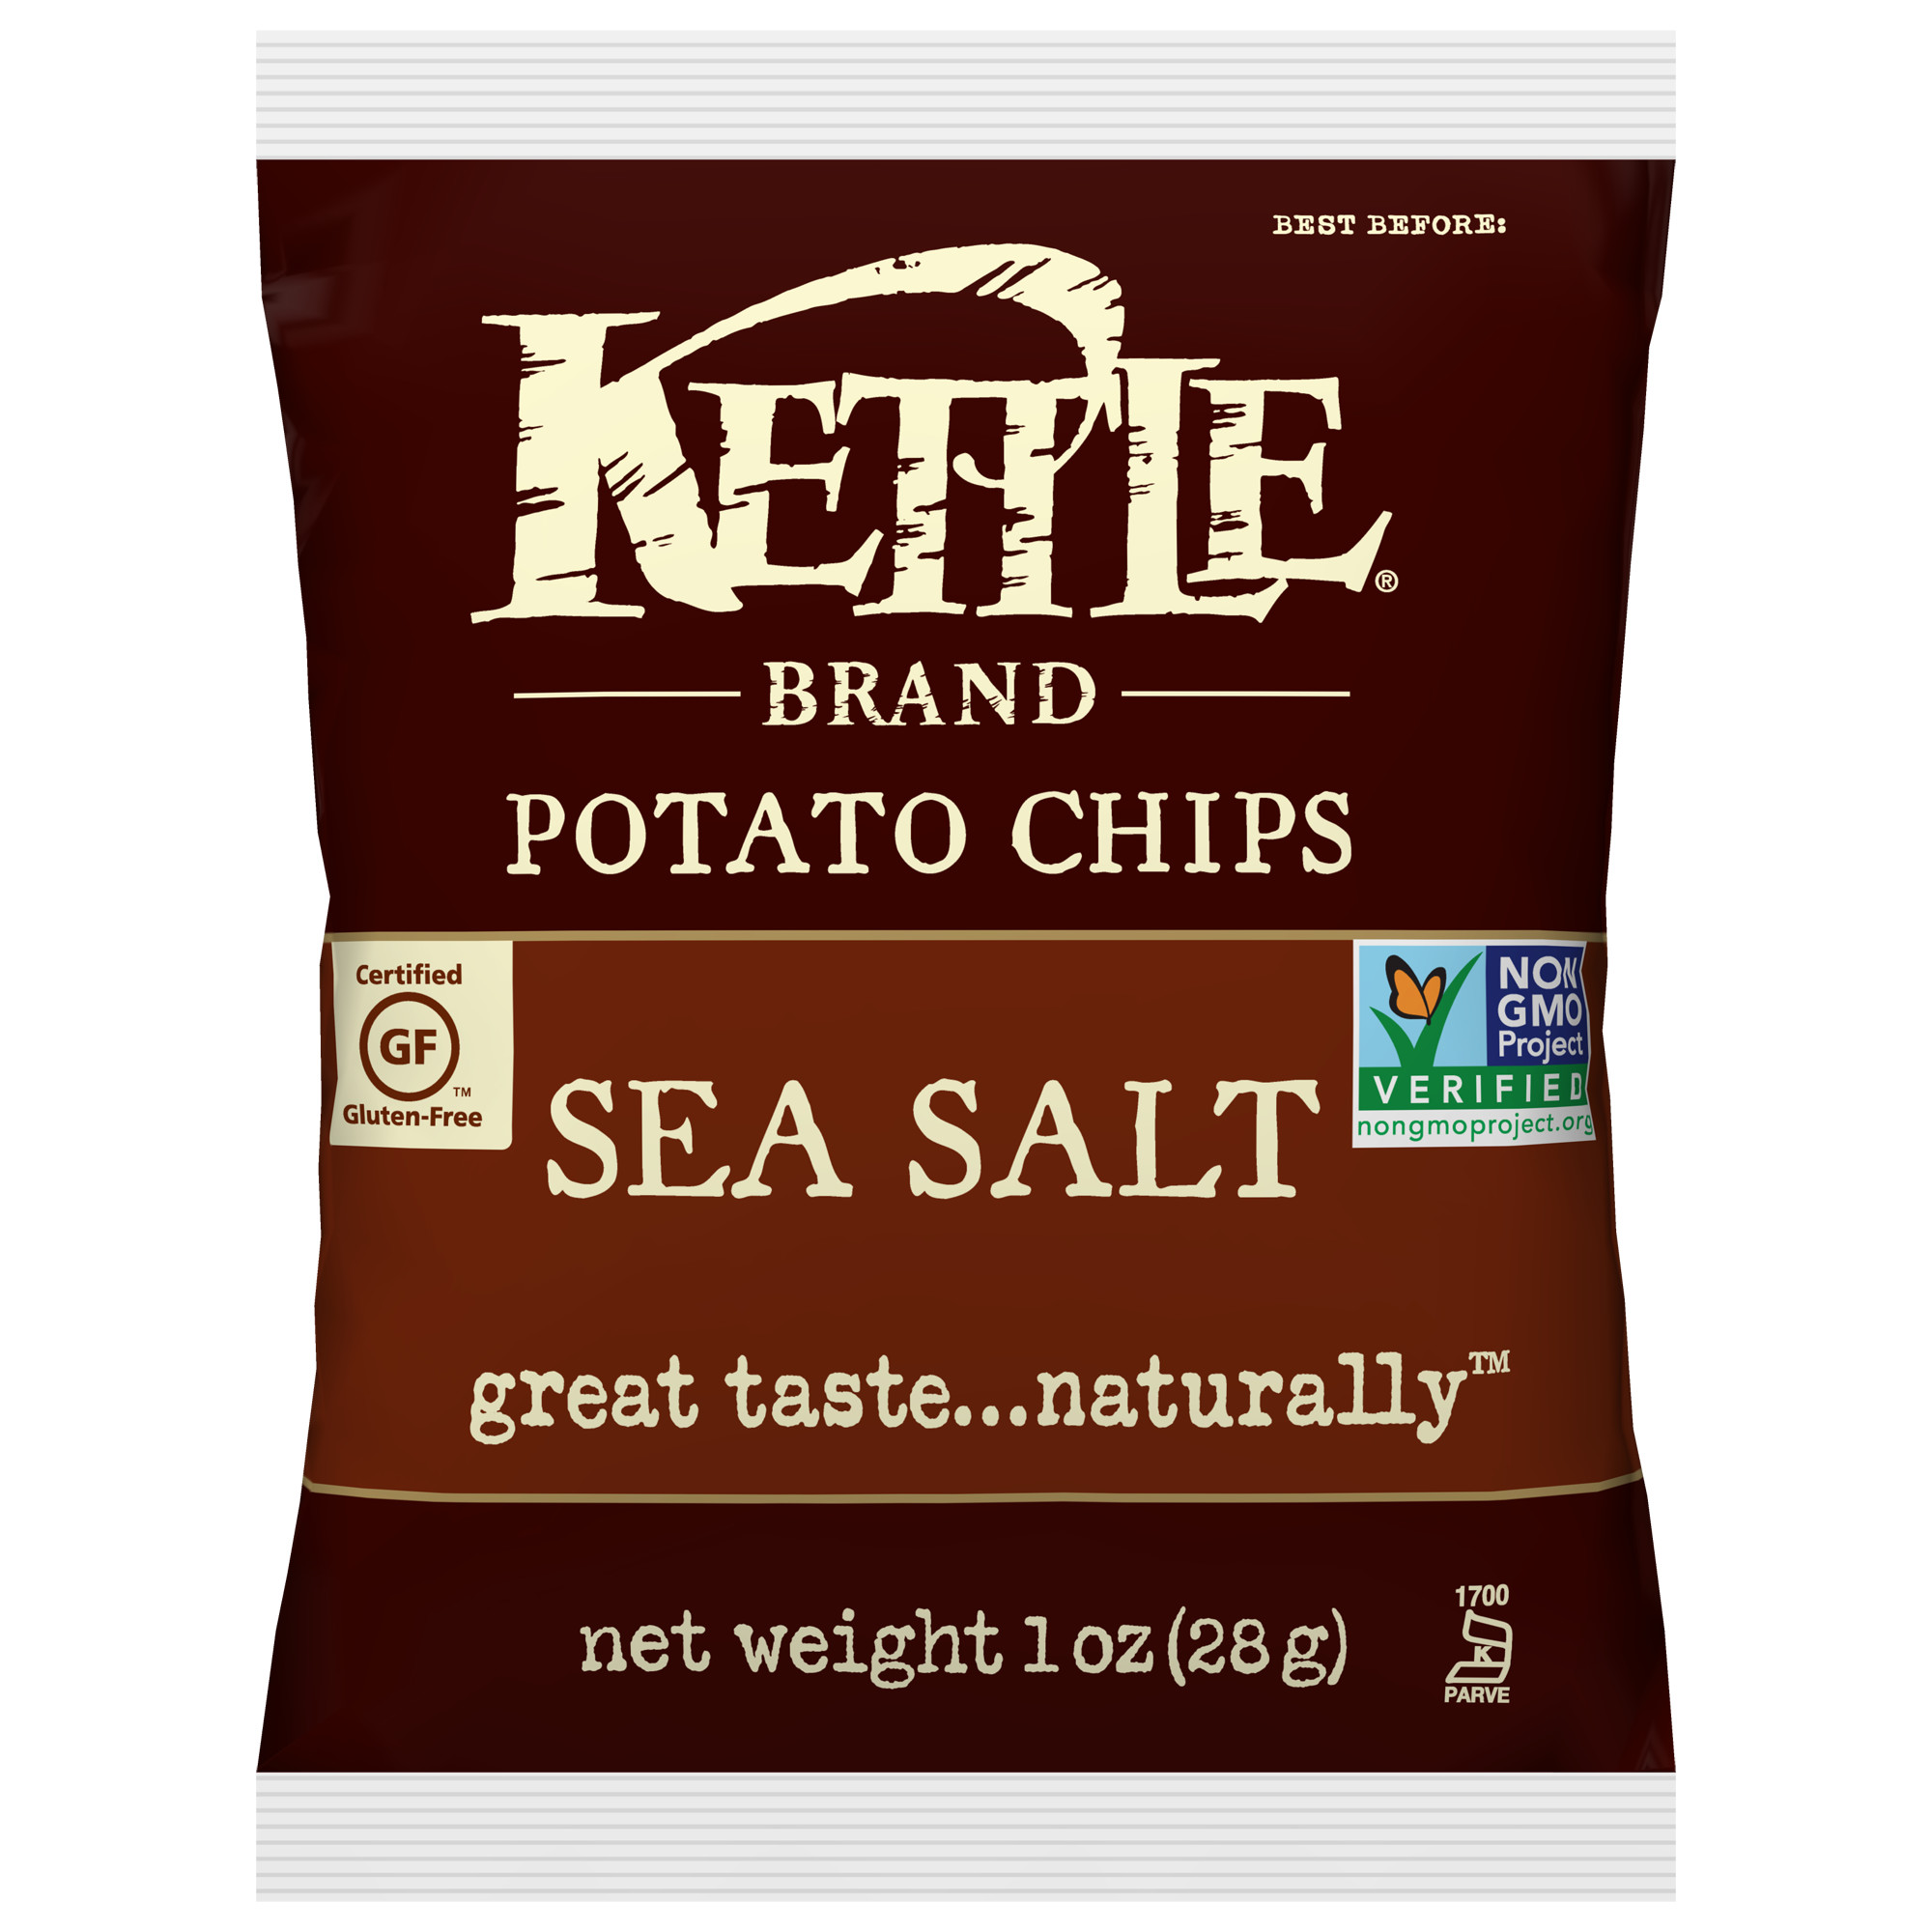 Kettle Brand Sea Salt Potato Chips, Single-Serve 1 Oz, 72 Ct